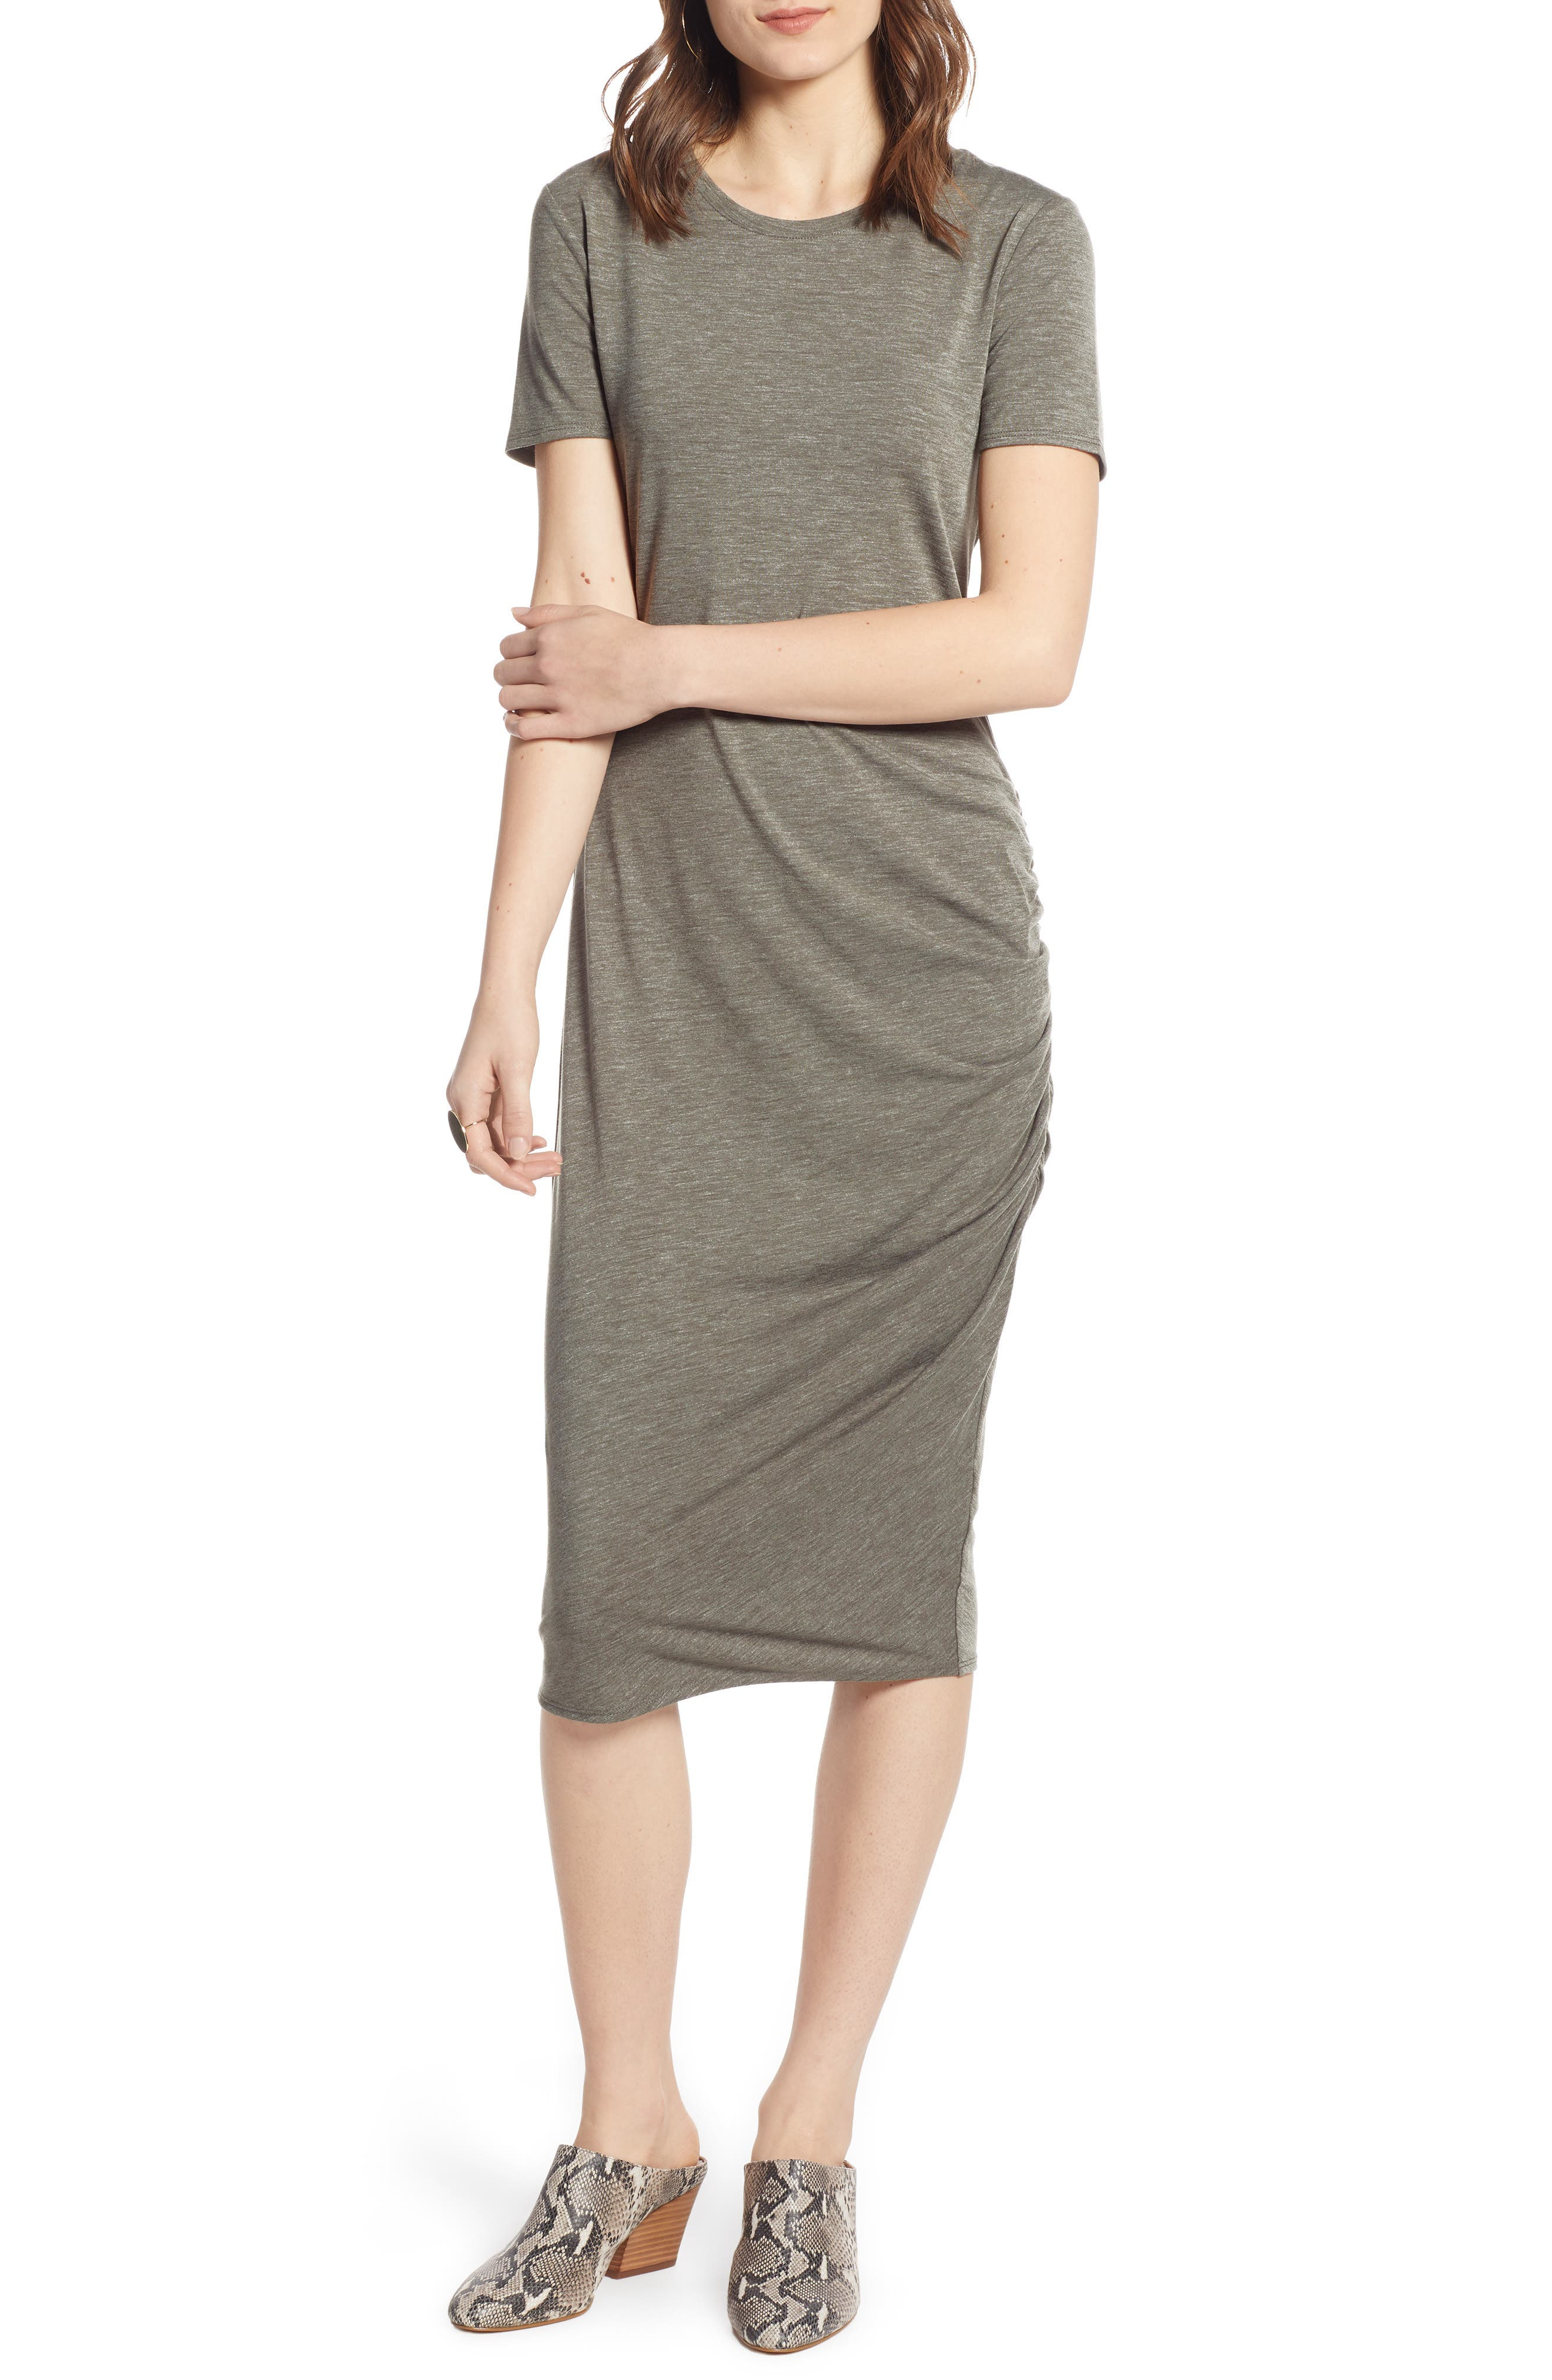 TREASURE & BOND Side Ruched Body-Con Dress, Main, color, OLIVE SARMA HEATHER